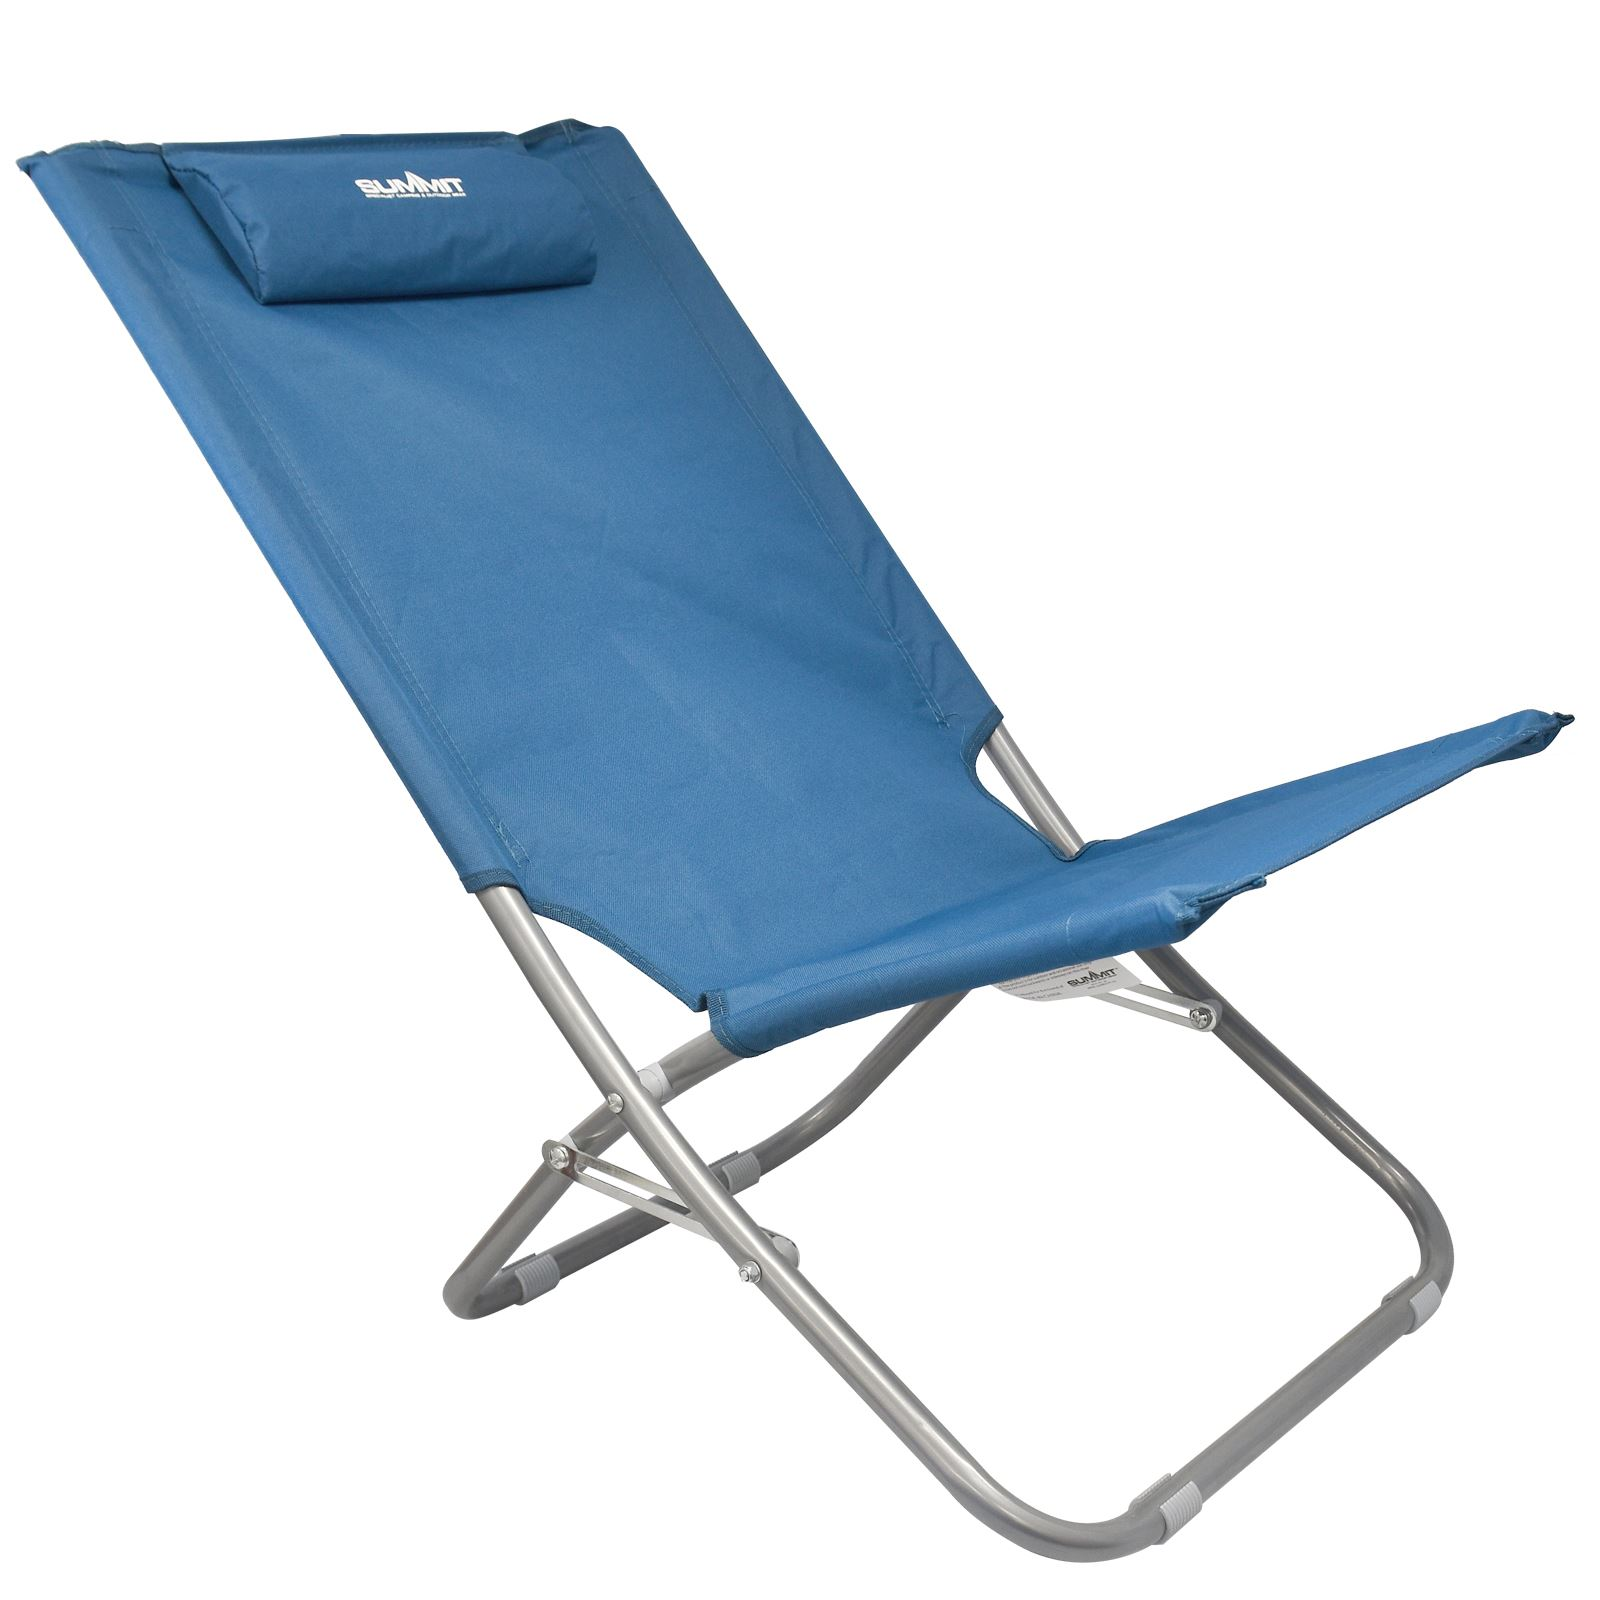 Beach Chair Beneluc